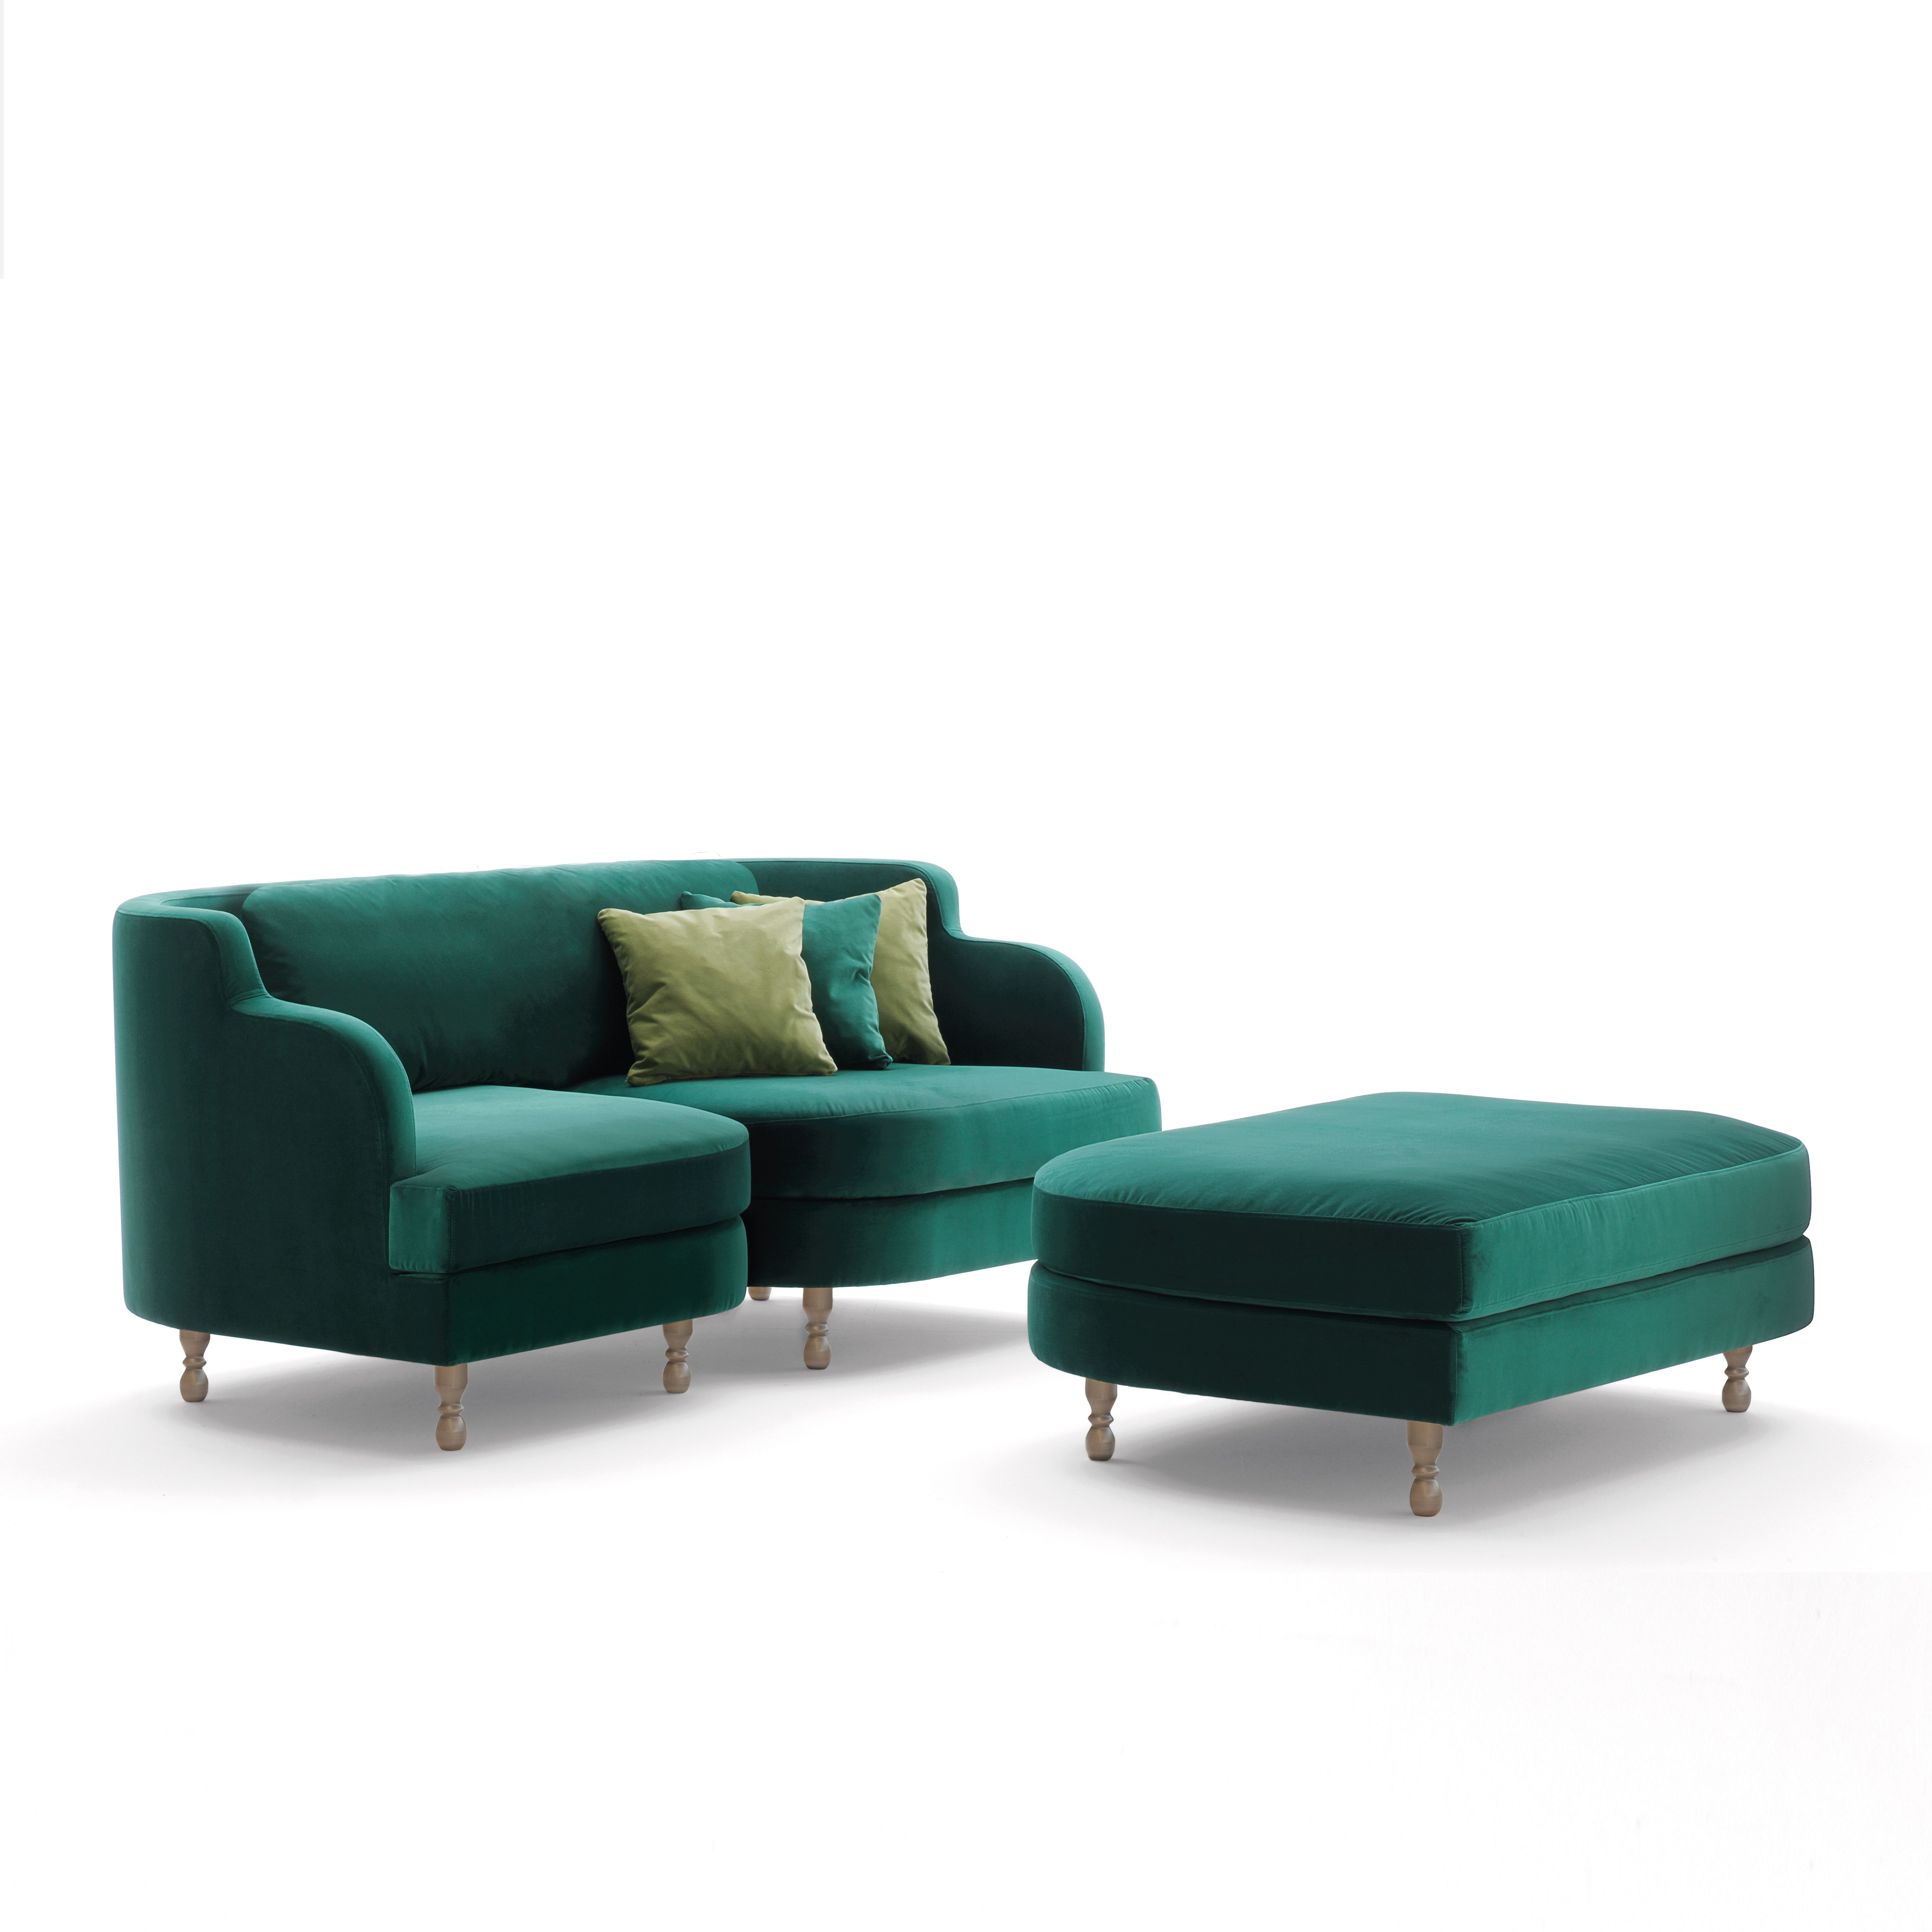 Délice From Sandler Seating In Green Upholstered Sofas Ottomans And Tables With Solid Beech Wood Legs